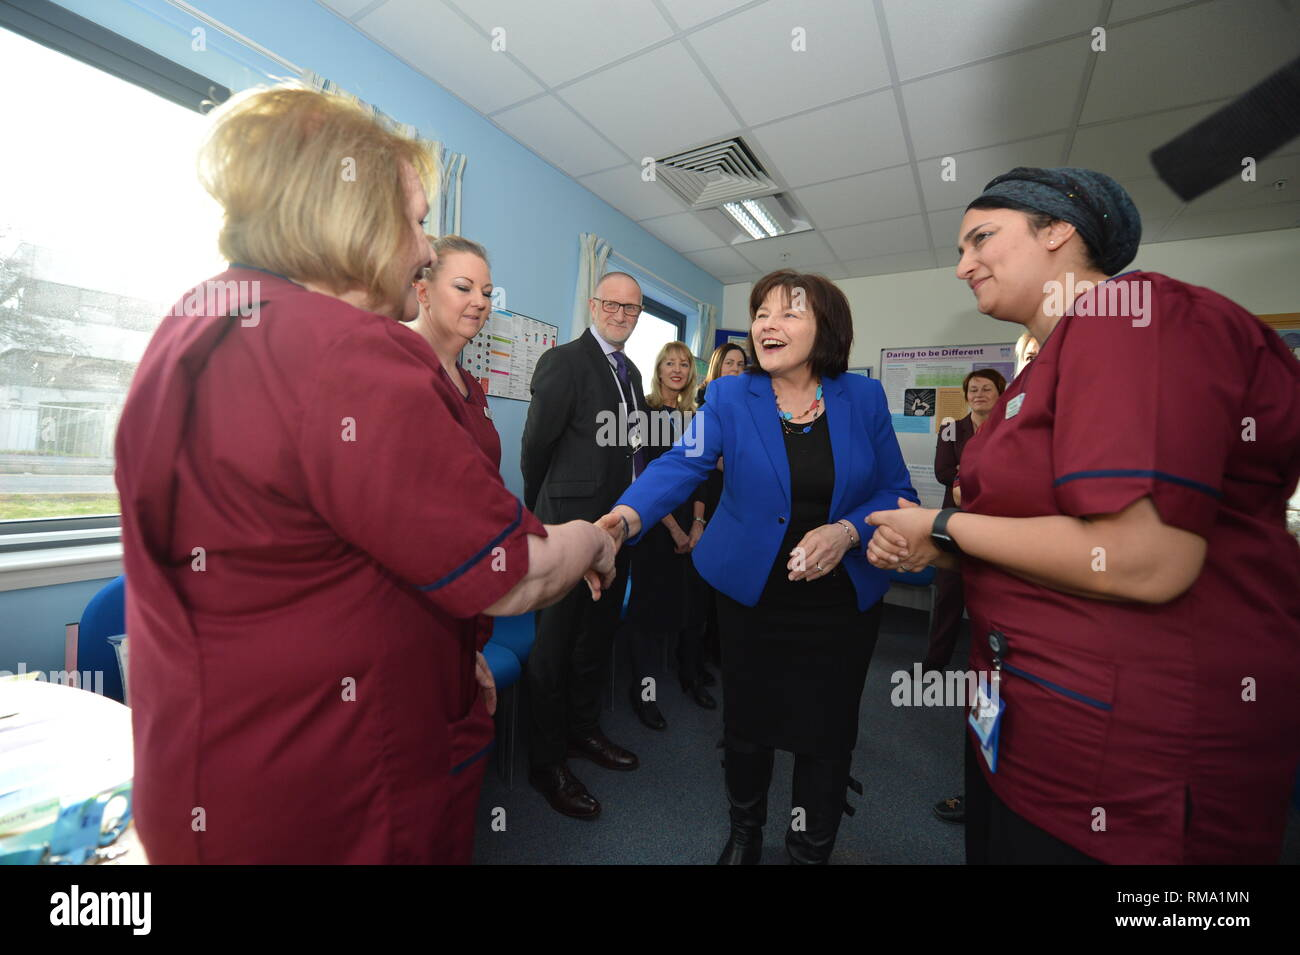 Kilmarnock, UK. 14 February 2019.(L-R) Linda Rimmer - Midwife; Jean Davis - Midwife; Colin McDowall - Chief Executive South Lanarkshire Council; Health Secretary - Jeane Freeman; Attica Wheeler - Head of Midwifery Associate Nurse Director, NHS Ayrshire and Arran. Transforming maternity and neonatal care across Scotland Cabinet Secretary for Health Jeane Freemanl visits Crosshouse Hospital in NHS Ayrshire and Arran to announce a £12 million investment which will ensure mums, babies and other family members are all supported from pregnancy to birth and after. This includes testing a new model - Stock Image